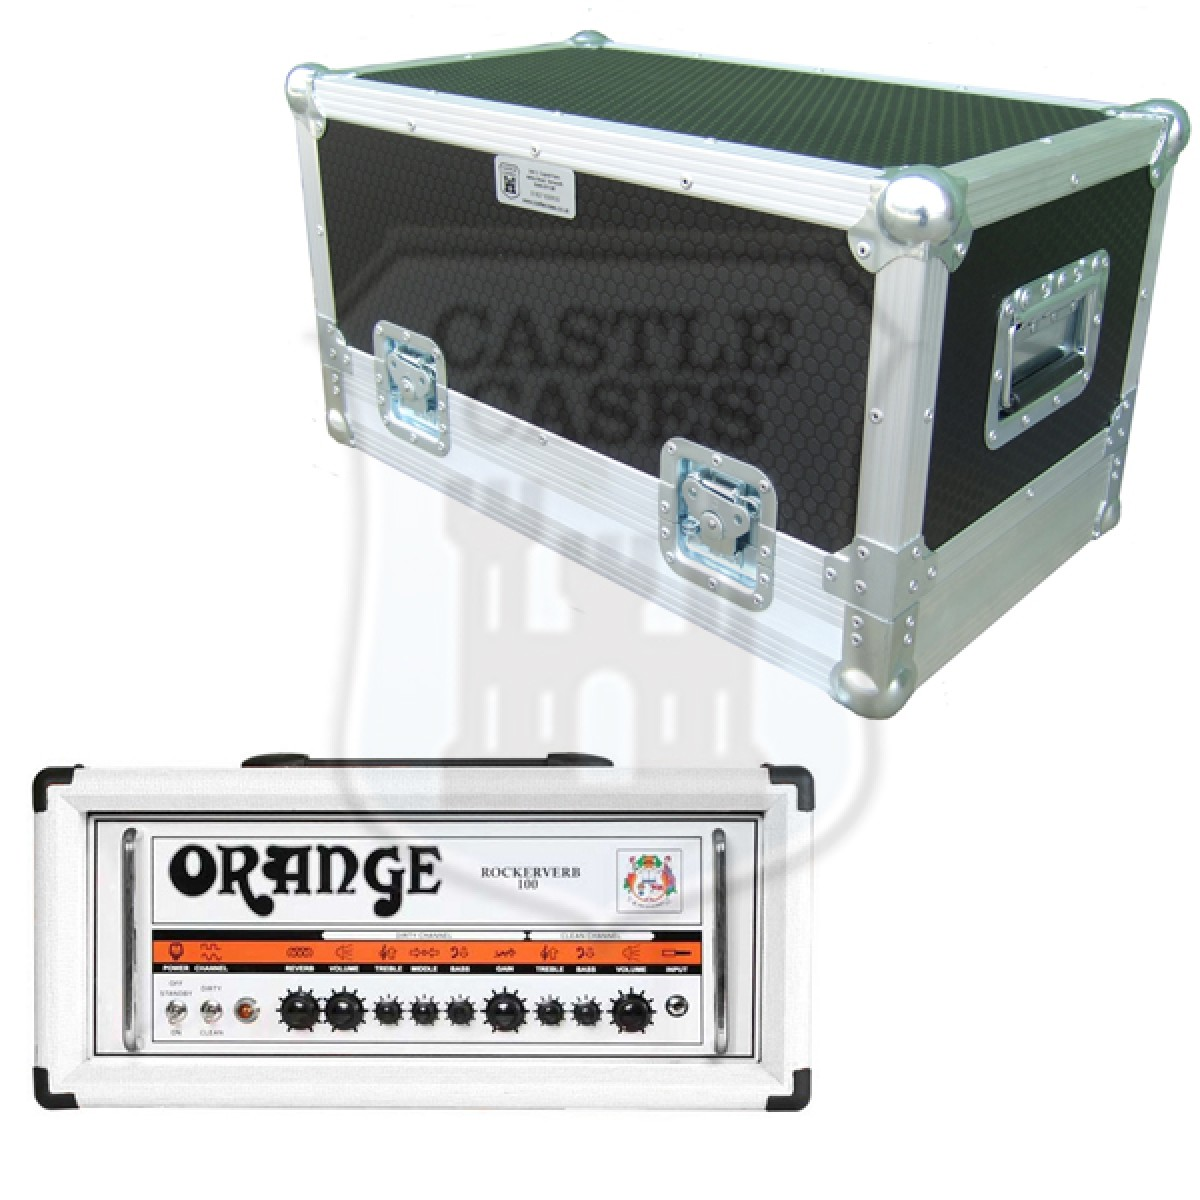 Orange Rockerverb 100 Flightcase